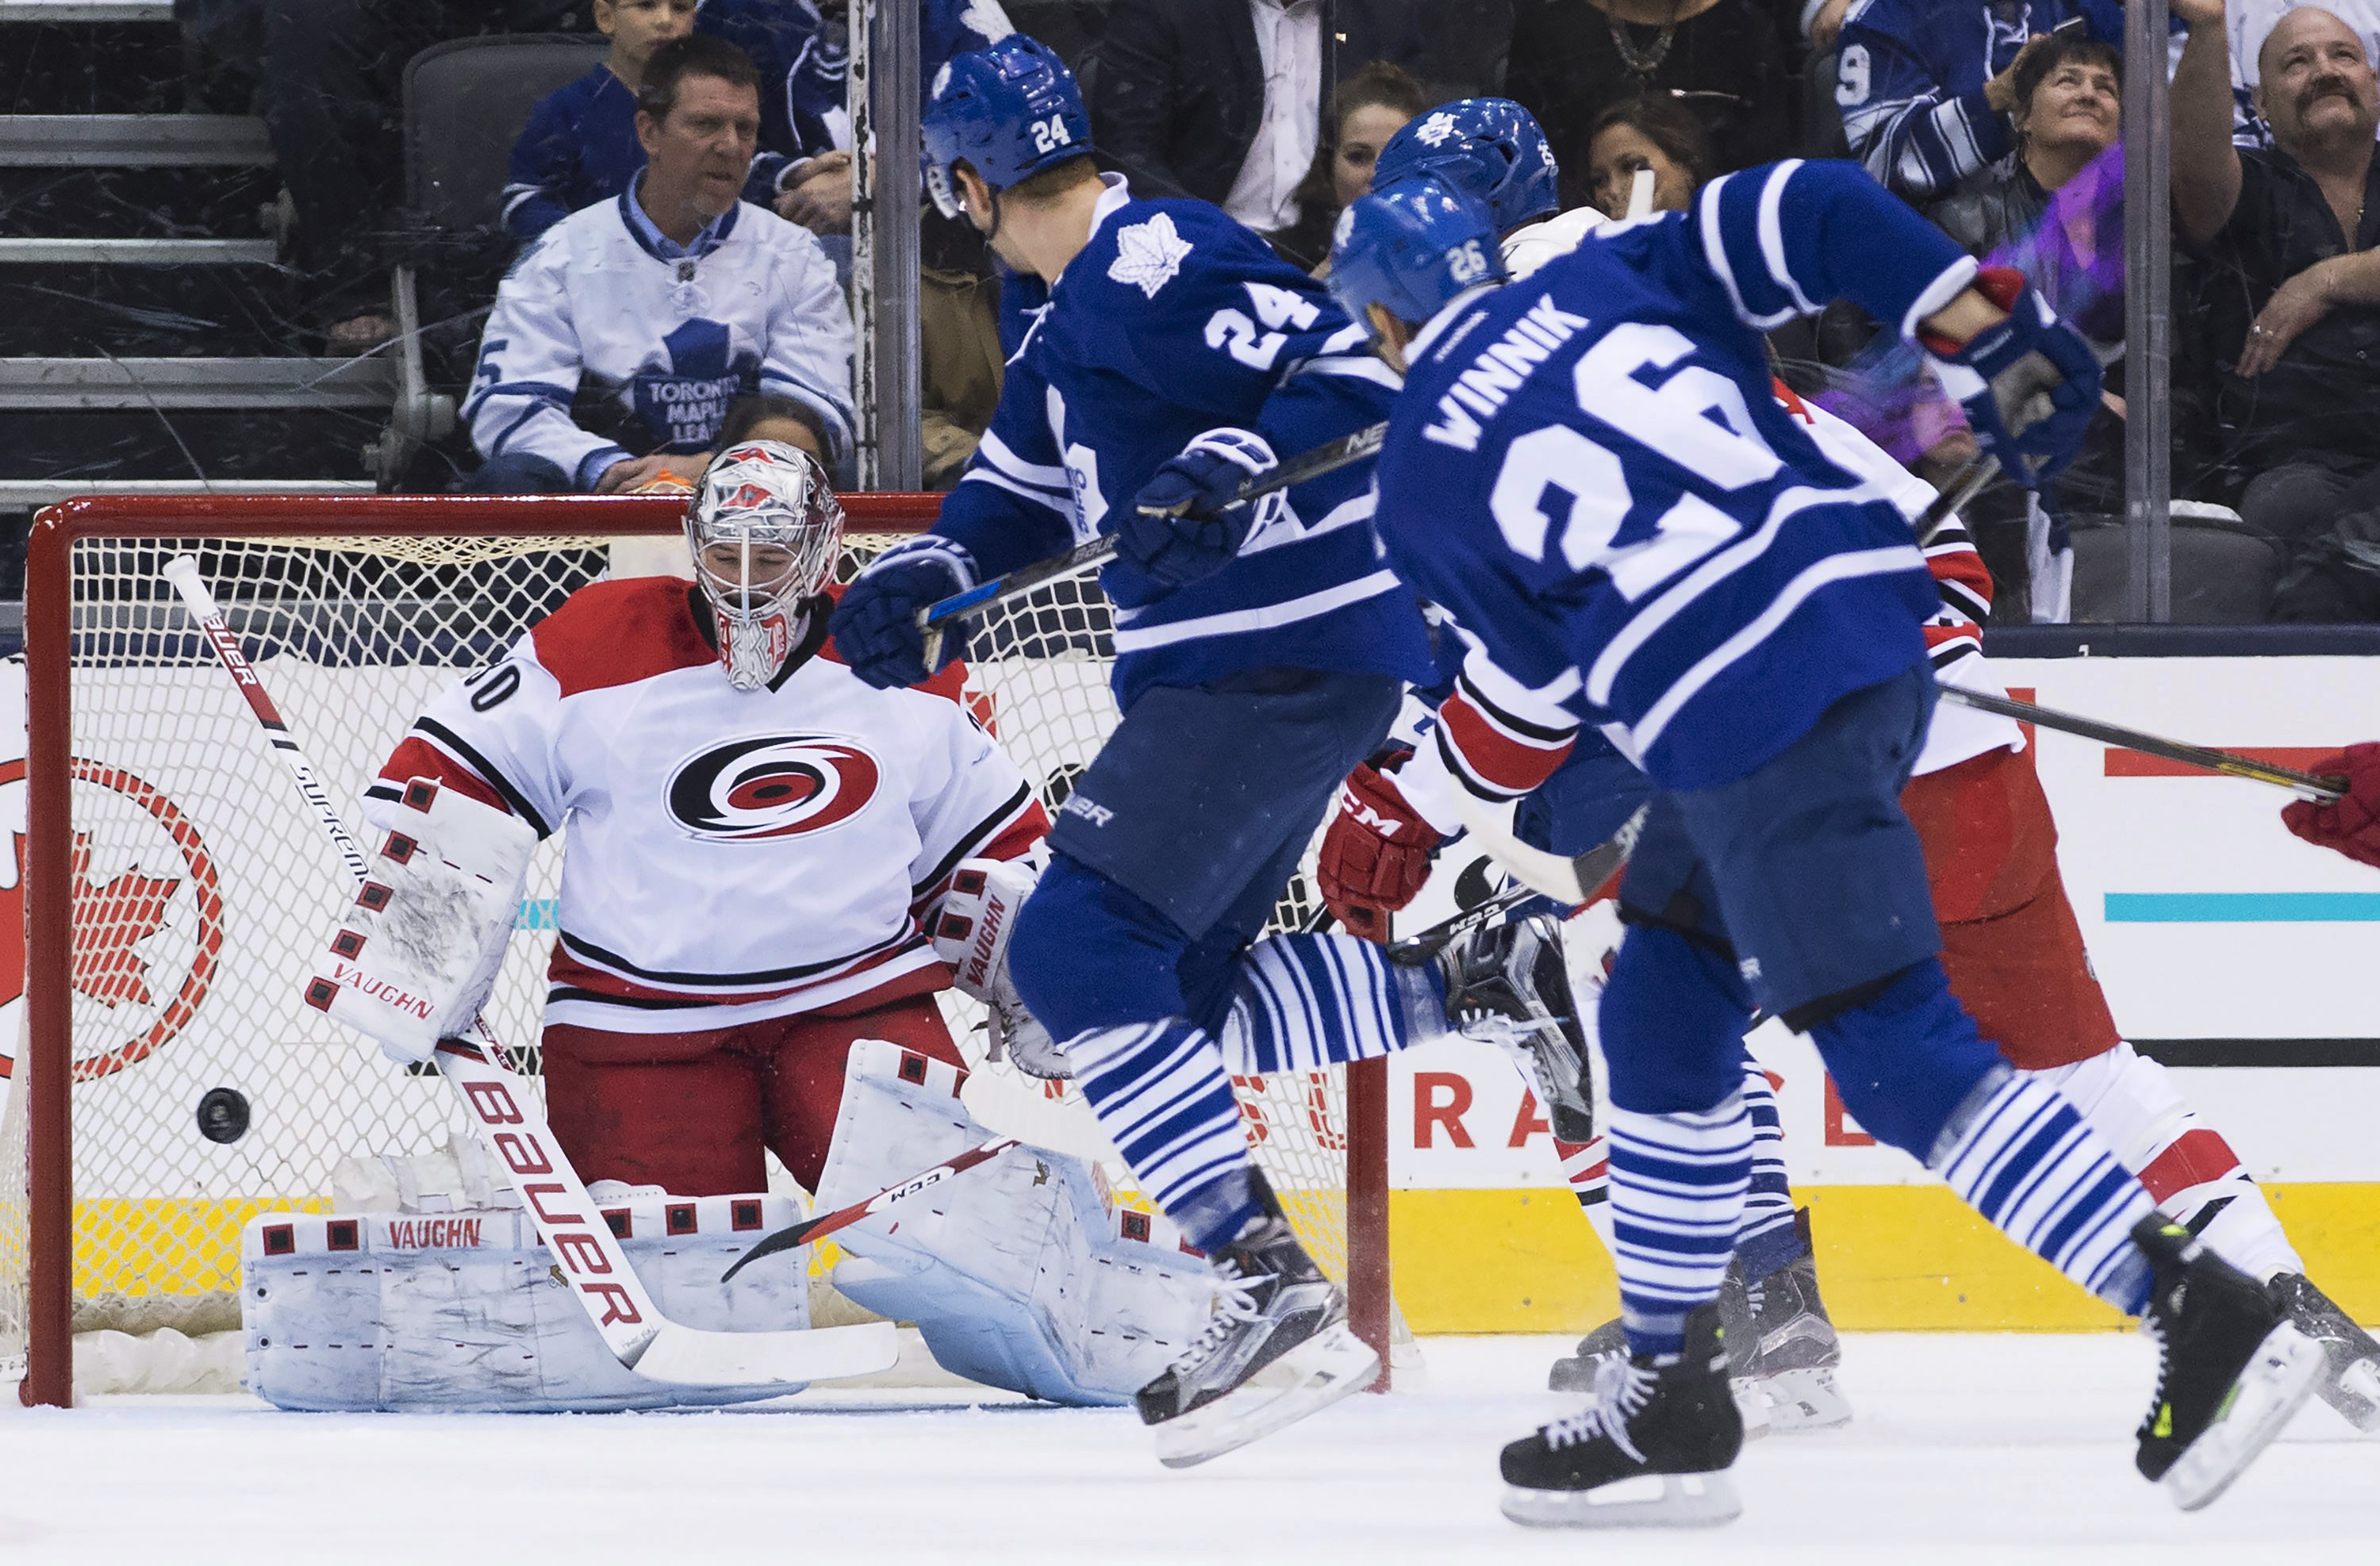 Carolina Hurricanes goalie Cam Ward (30) makes a save on Toronto Maple Leafs right wing Daniel Winnik (26) as Maple Leafs center Peter Holland (24) looks for a rebound during the first period of an NHL hockey game Thursday, Feb. 25, 2016, in Toronto. (Nat